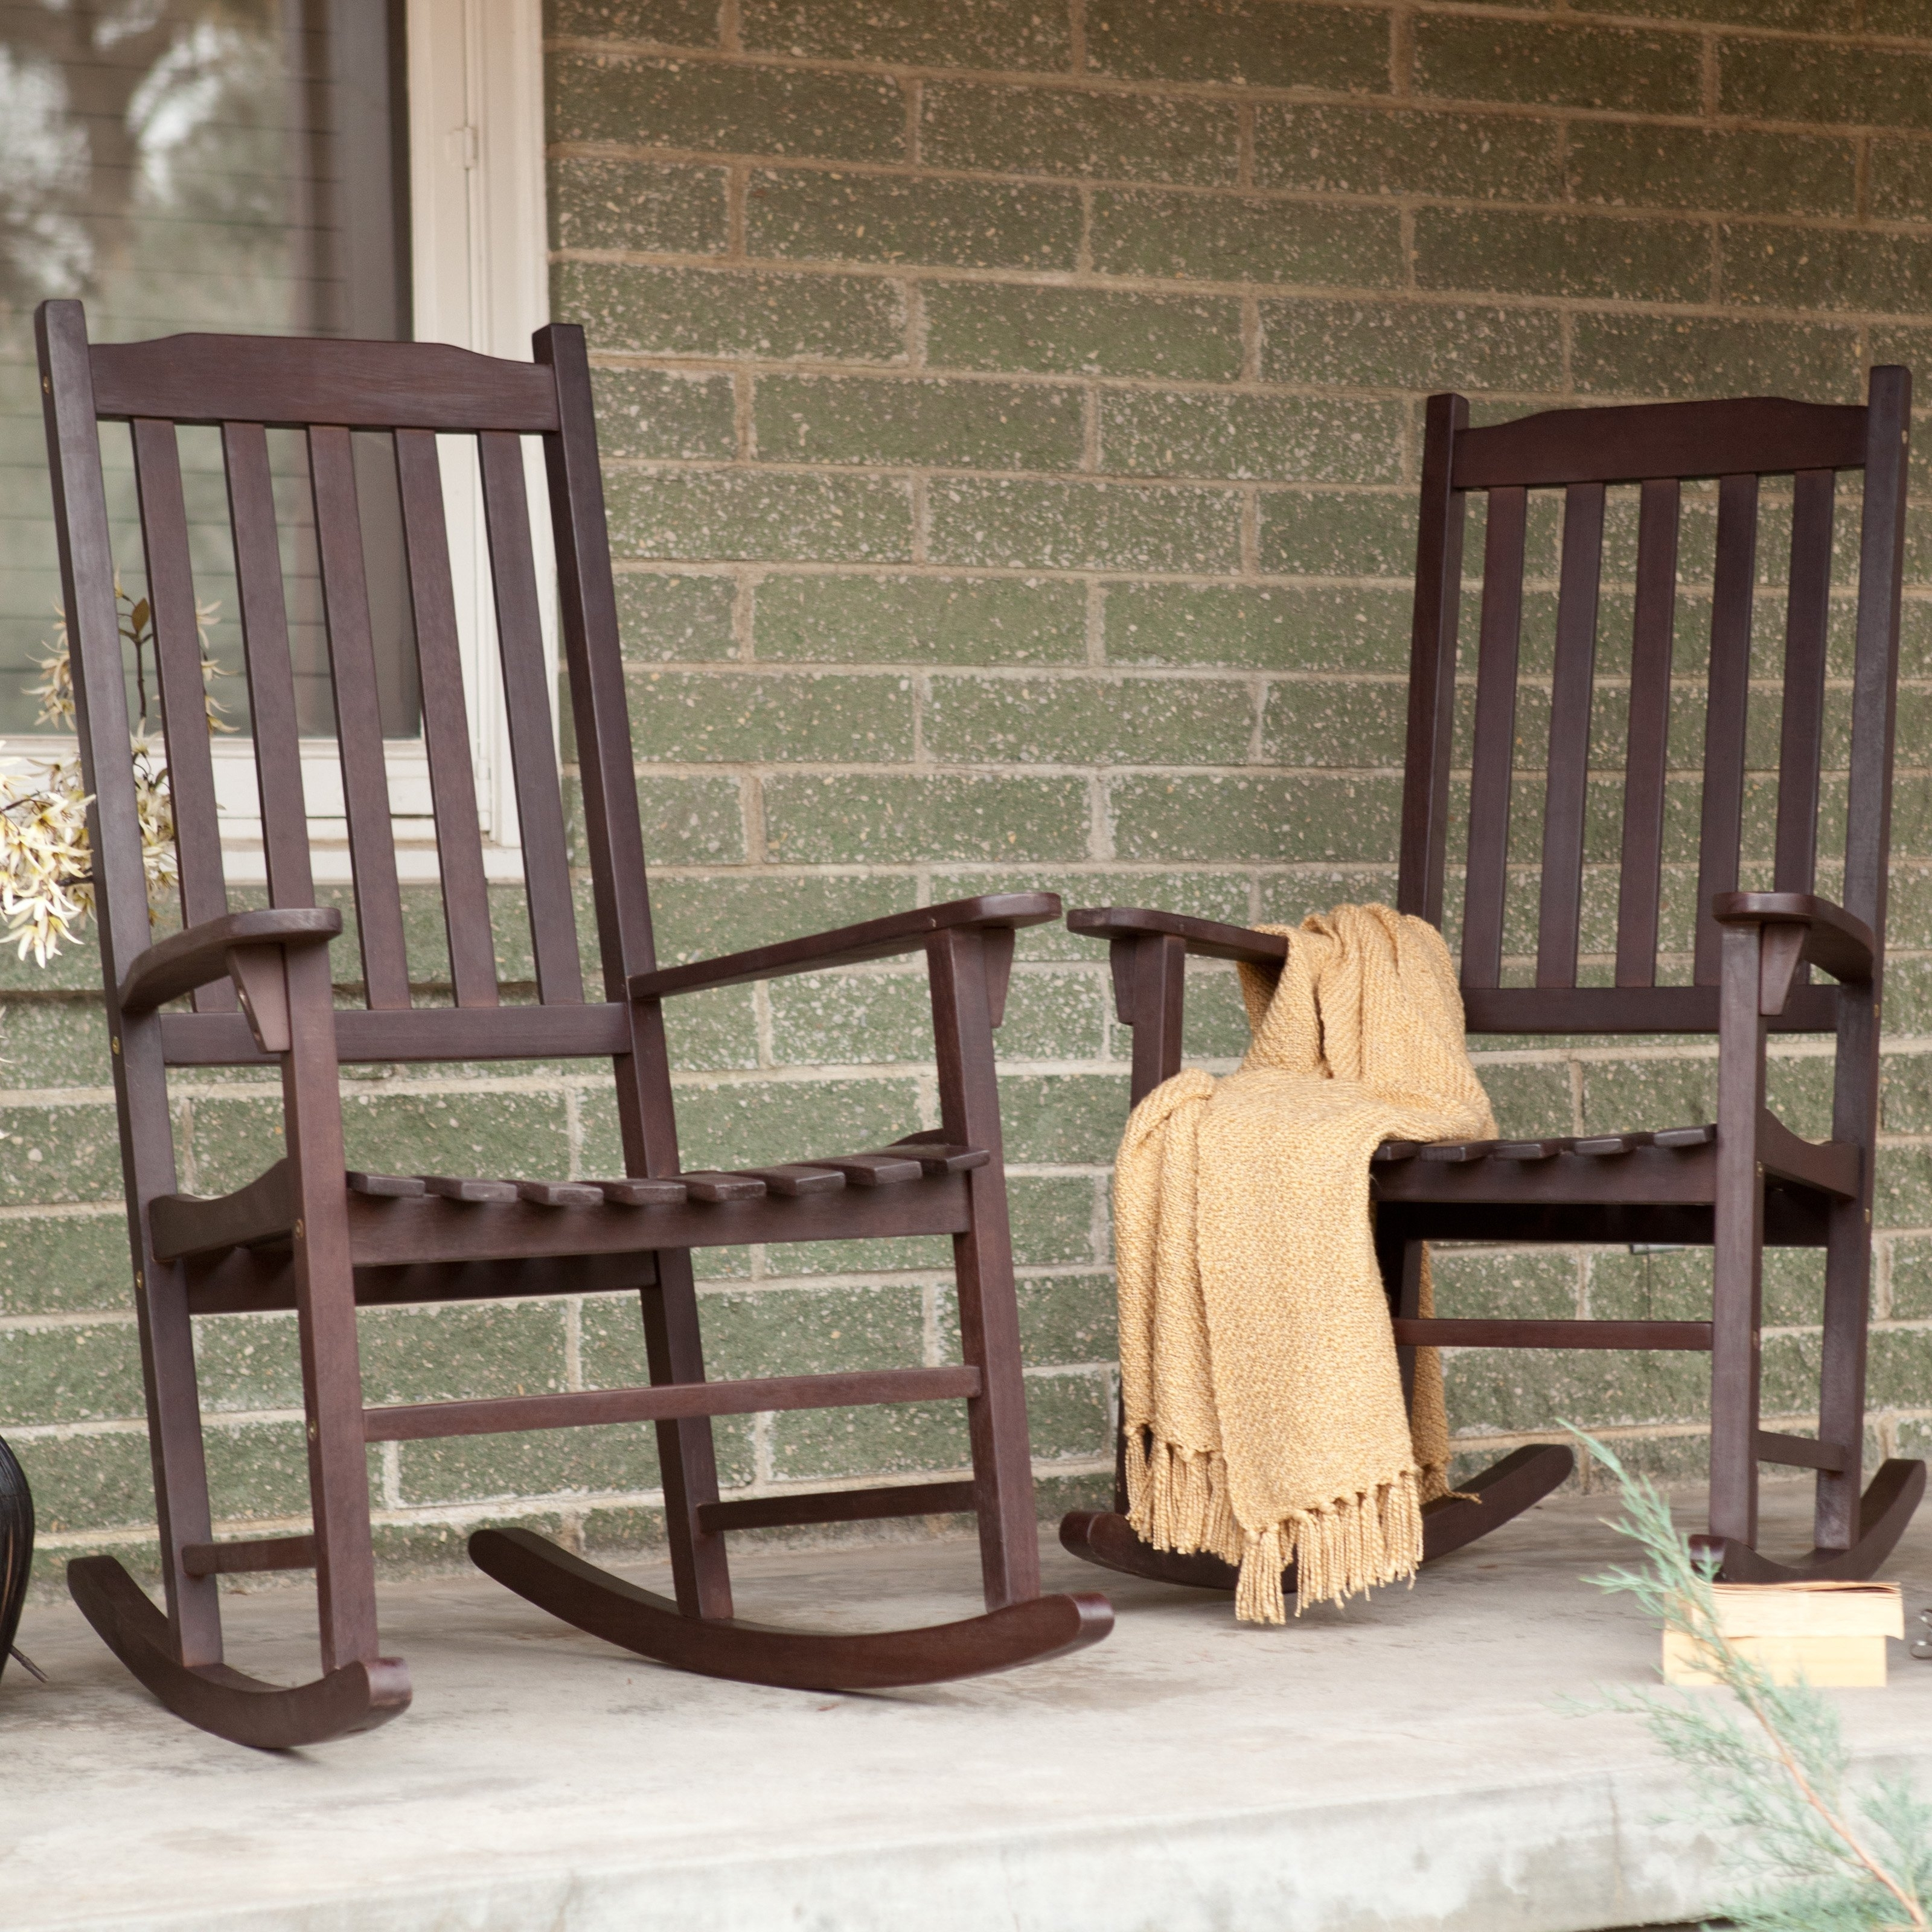 Rocking Chair Outdoor Wooden Regarding Recent Garden & Patio Furniture : Outdoor Wooden Rocking Chairs New Chairs (View 6 of 15)